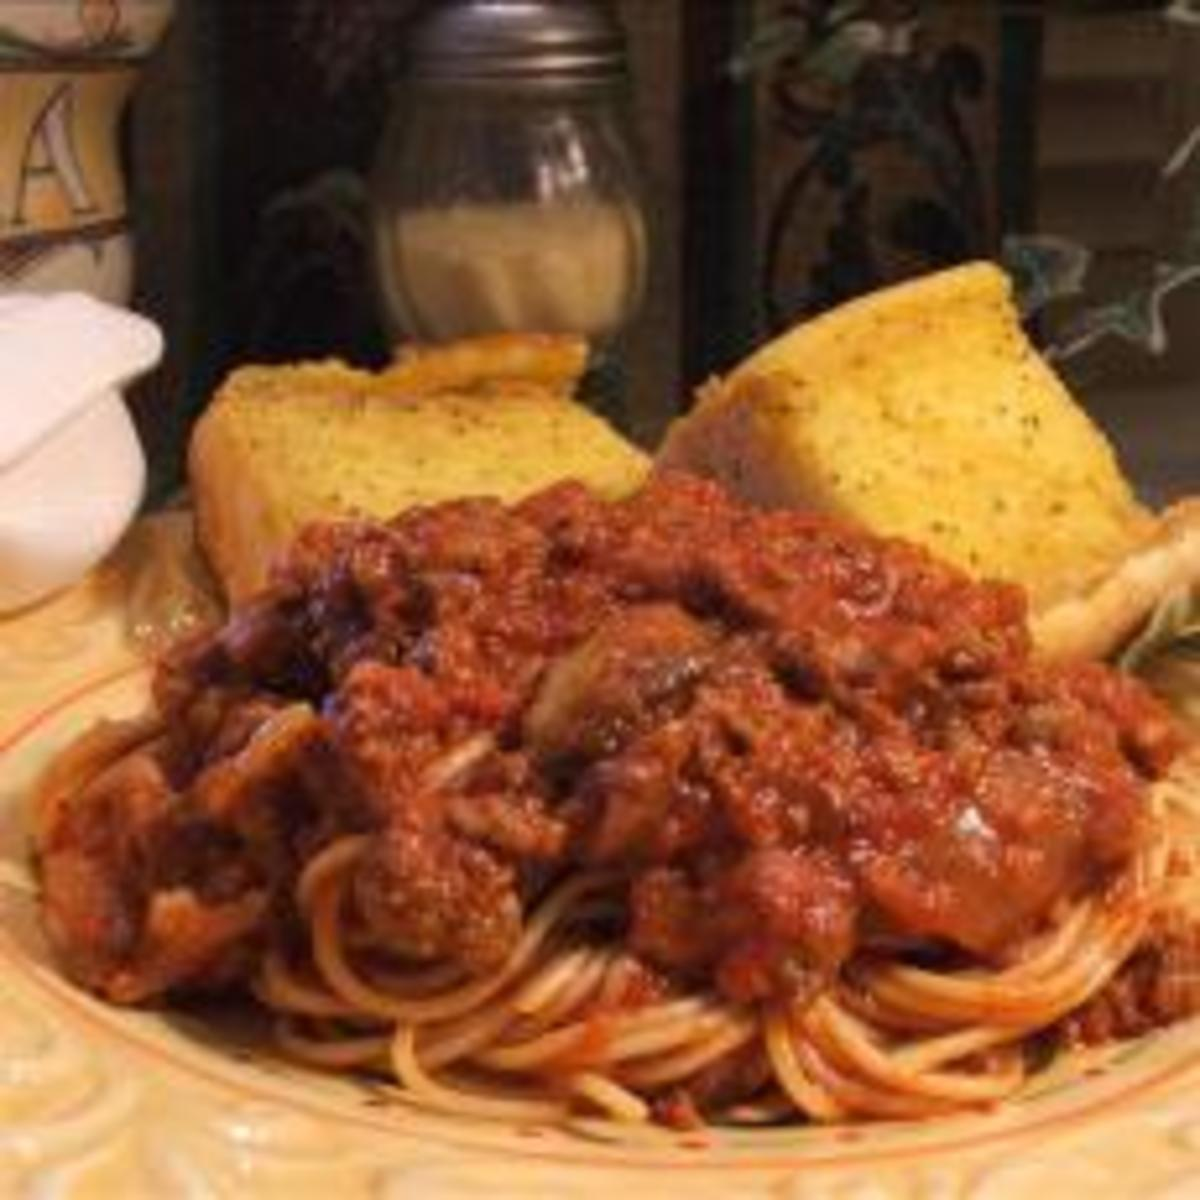 Delicious Homemade Spaghetti Sauce with Italian Sausage